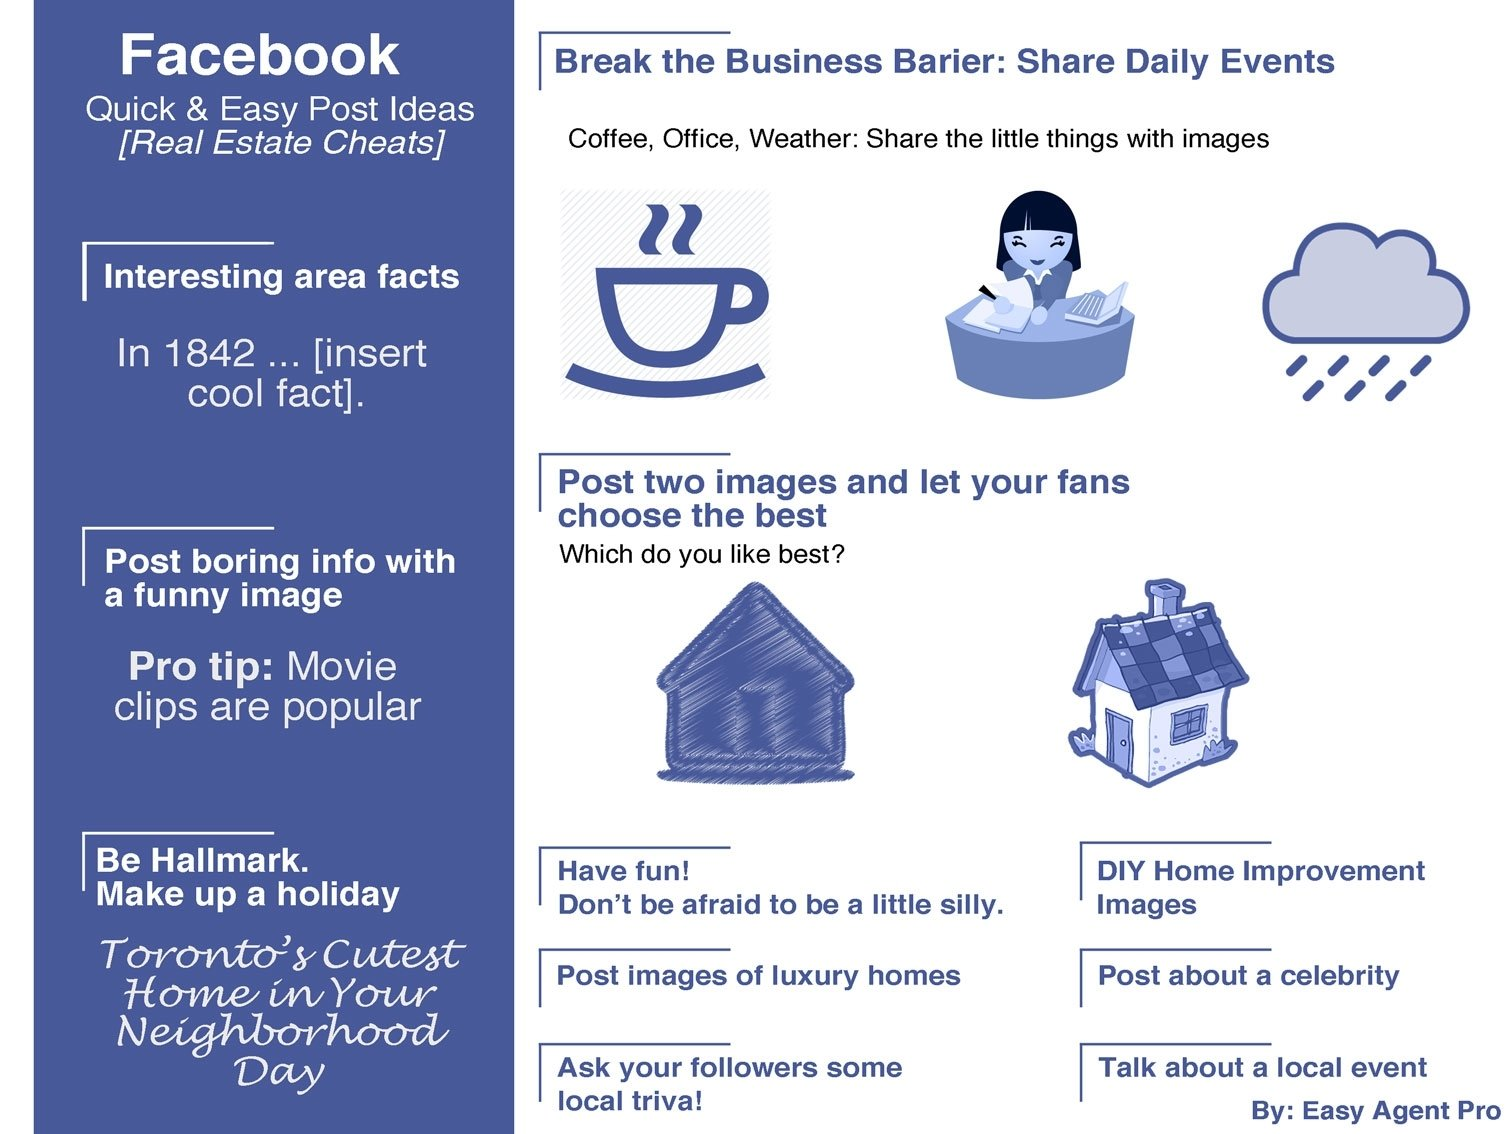 10 Unique Marketing Ideas For Real Estate Agents infographic quick and easy facebook post ideas for real estate 1 2021